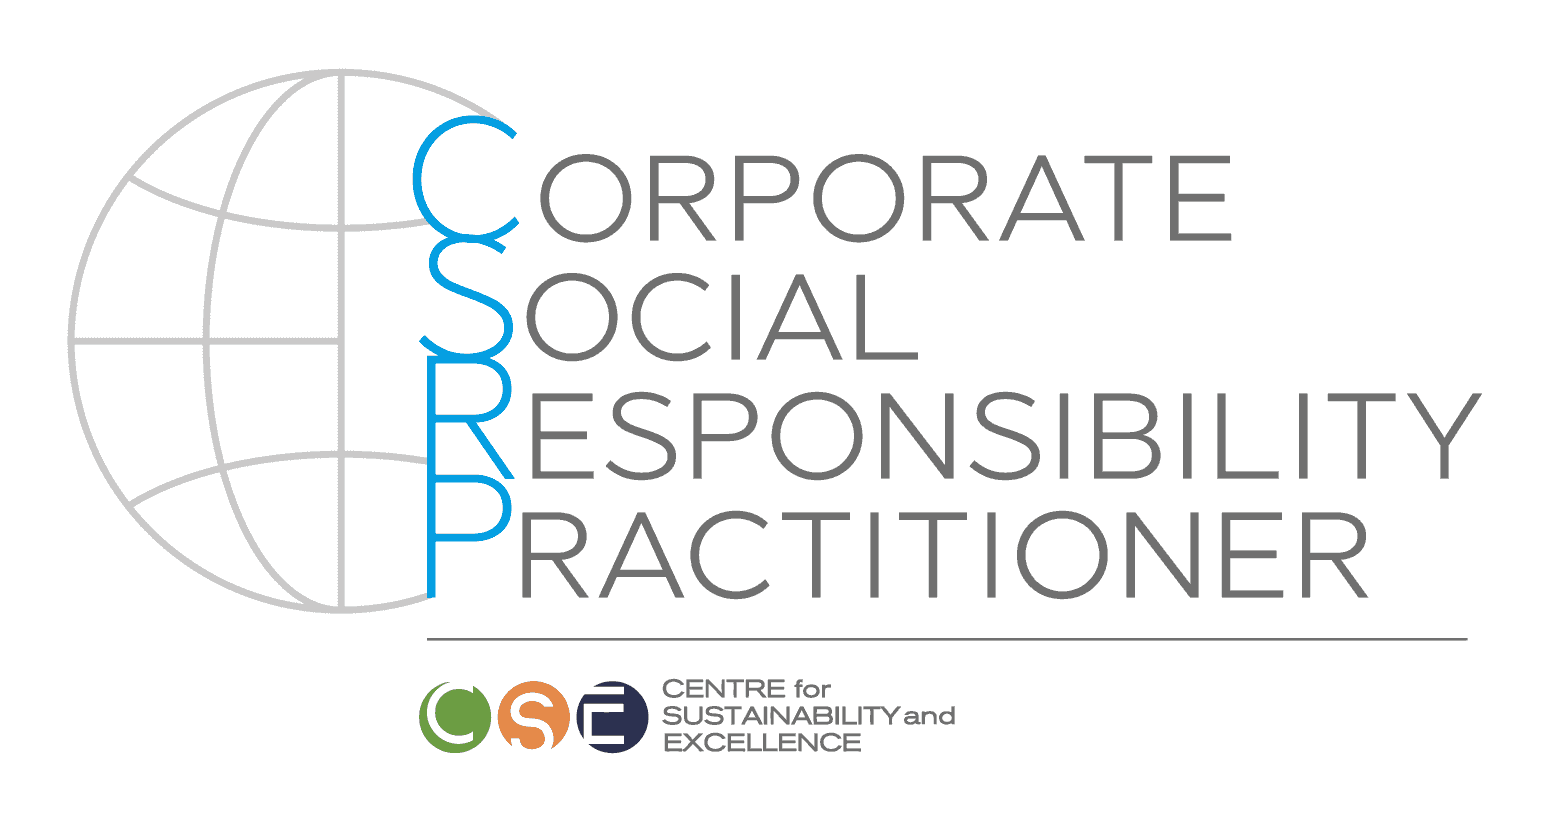 Corporate Social Responsibility Practitioner Logo